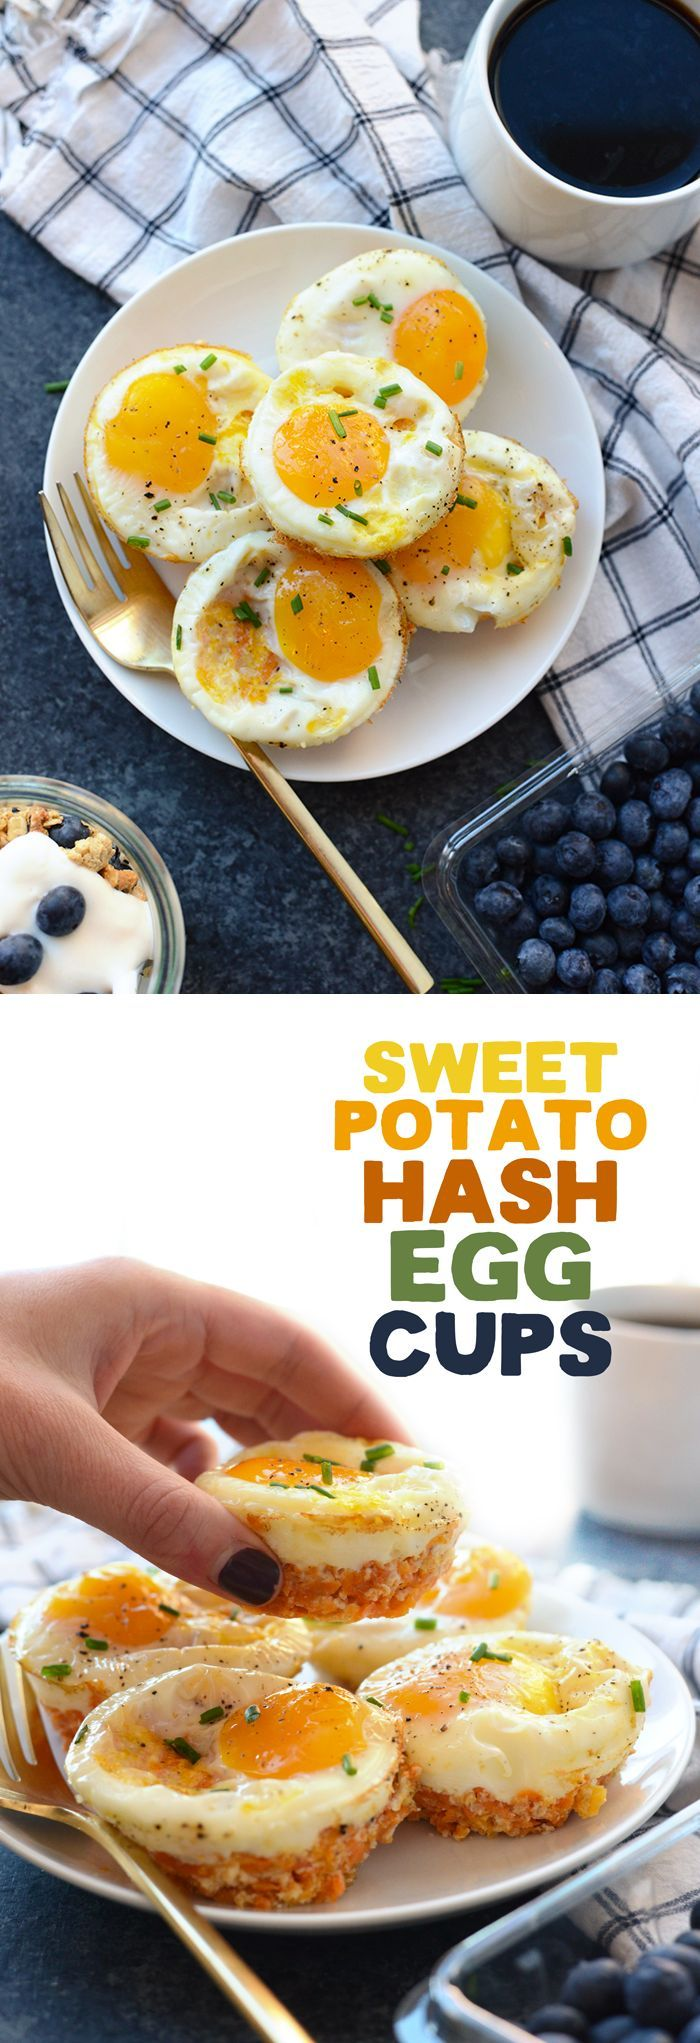 Sweet Potato Hash Egg Cups - we're taking baked eggs to the next level and adding a sweet potato/cheddar cheese base for the most delicious, satisfying savory breakfast you'll eat this year! (Baking Eggs)